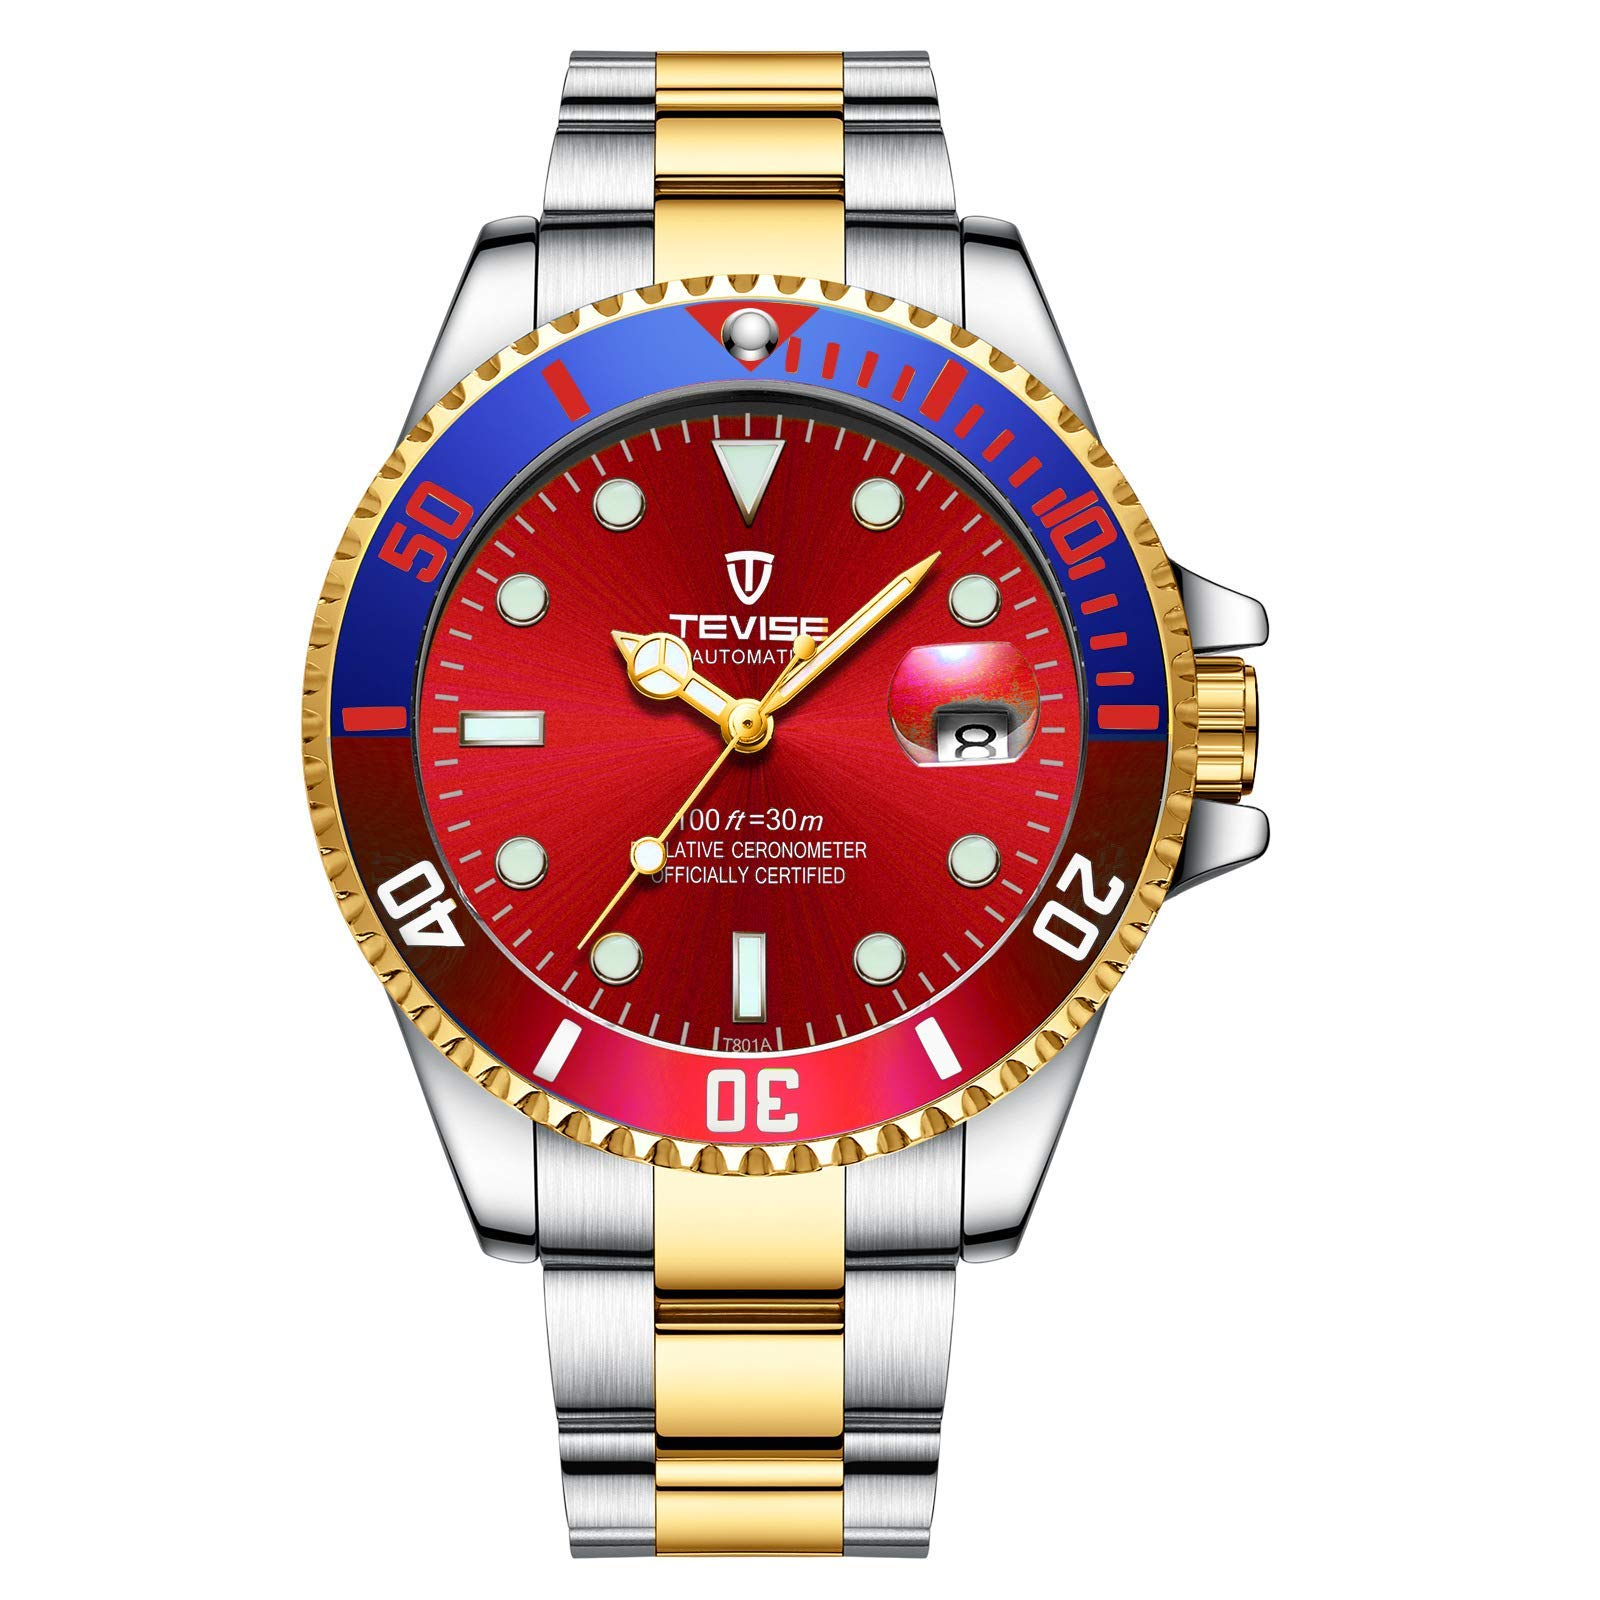 Men's Swiss Automatic Mechanical Stainless Steel Watches with Calendar Luminous Waterproof Rainbow Tevise Submariner Watc (Red Blue) by clearLove7